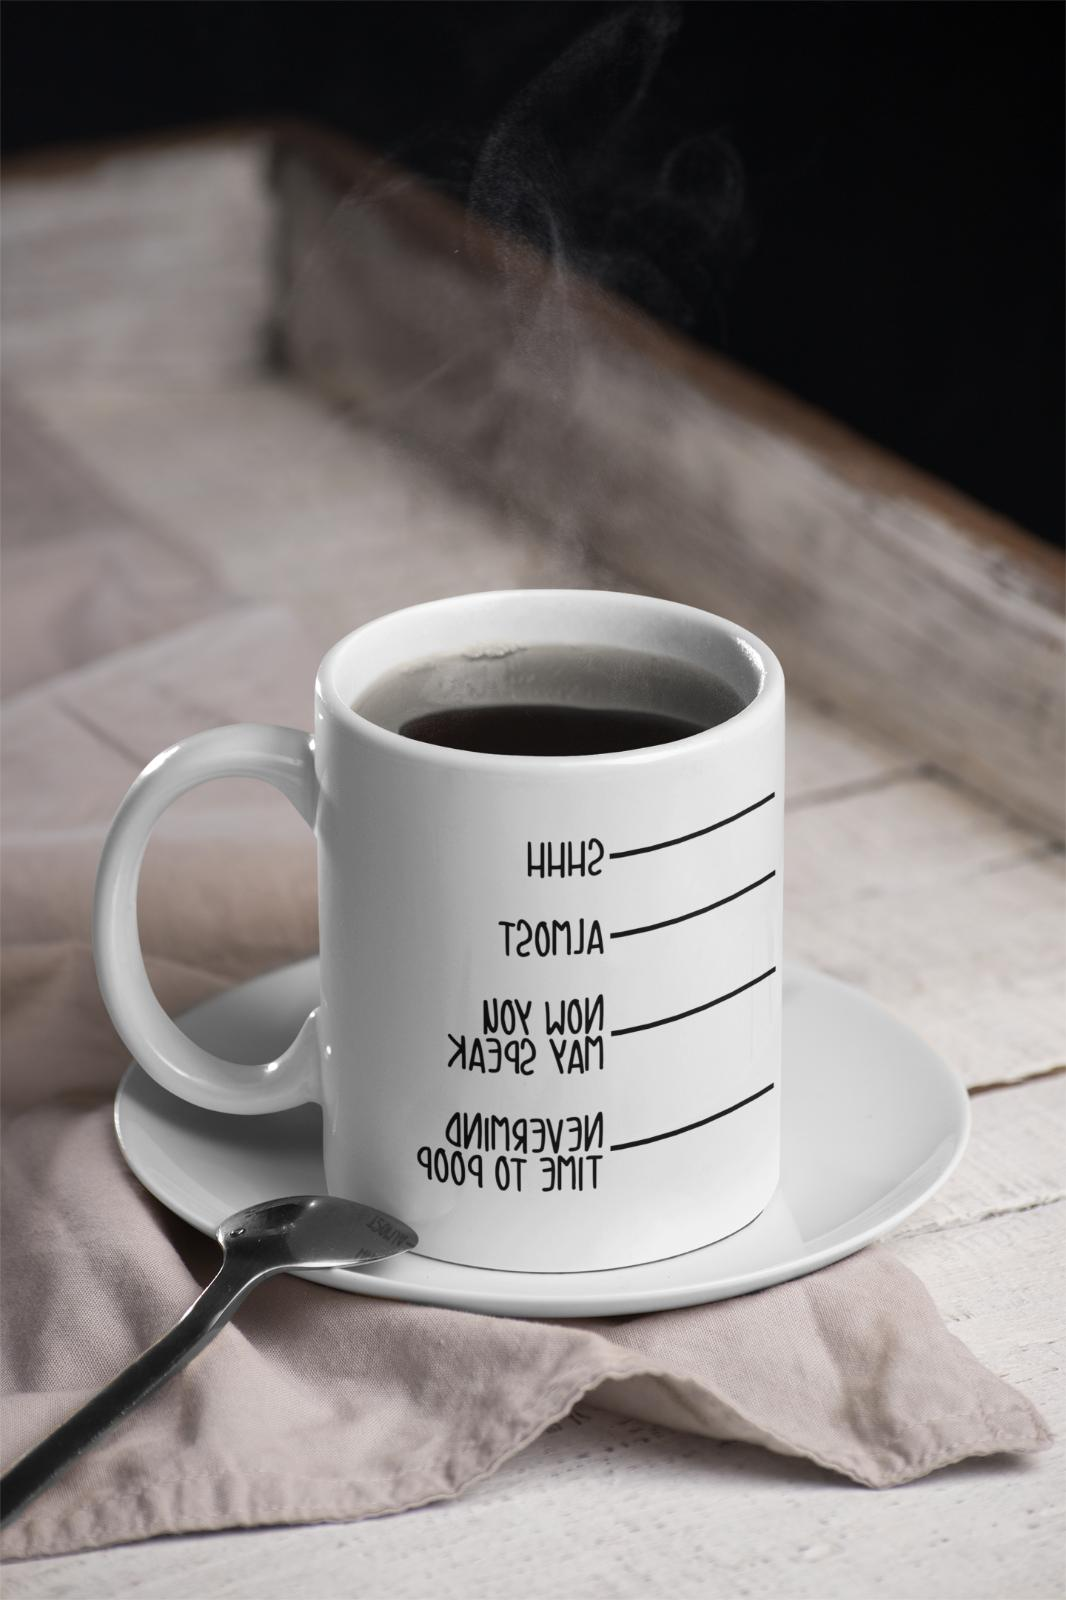 Shhh Now May Have To Go Funny Mug